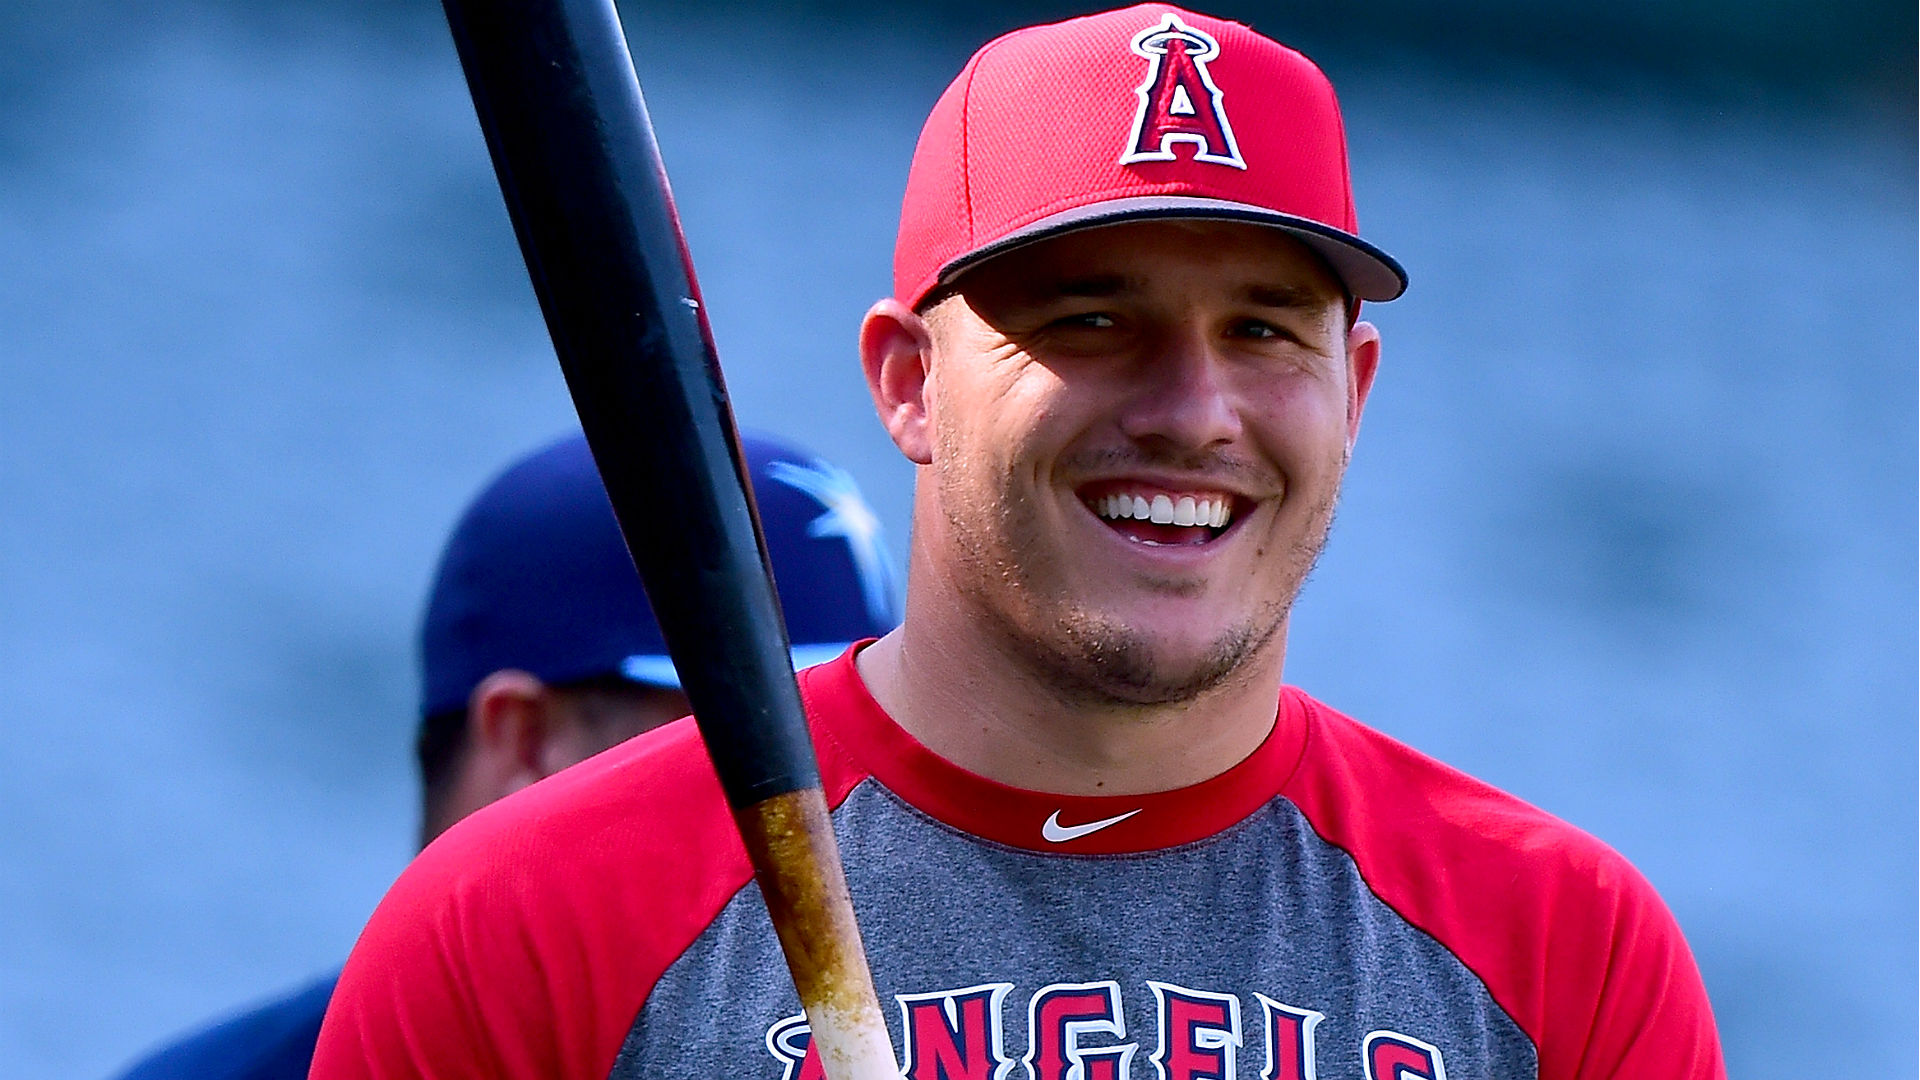 Mike Trout makes his decision: He's playing for the Angels in 2020 |  Sporting News